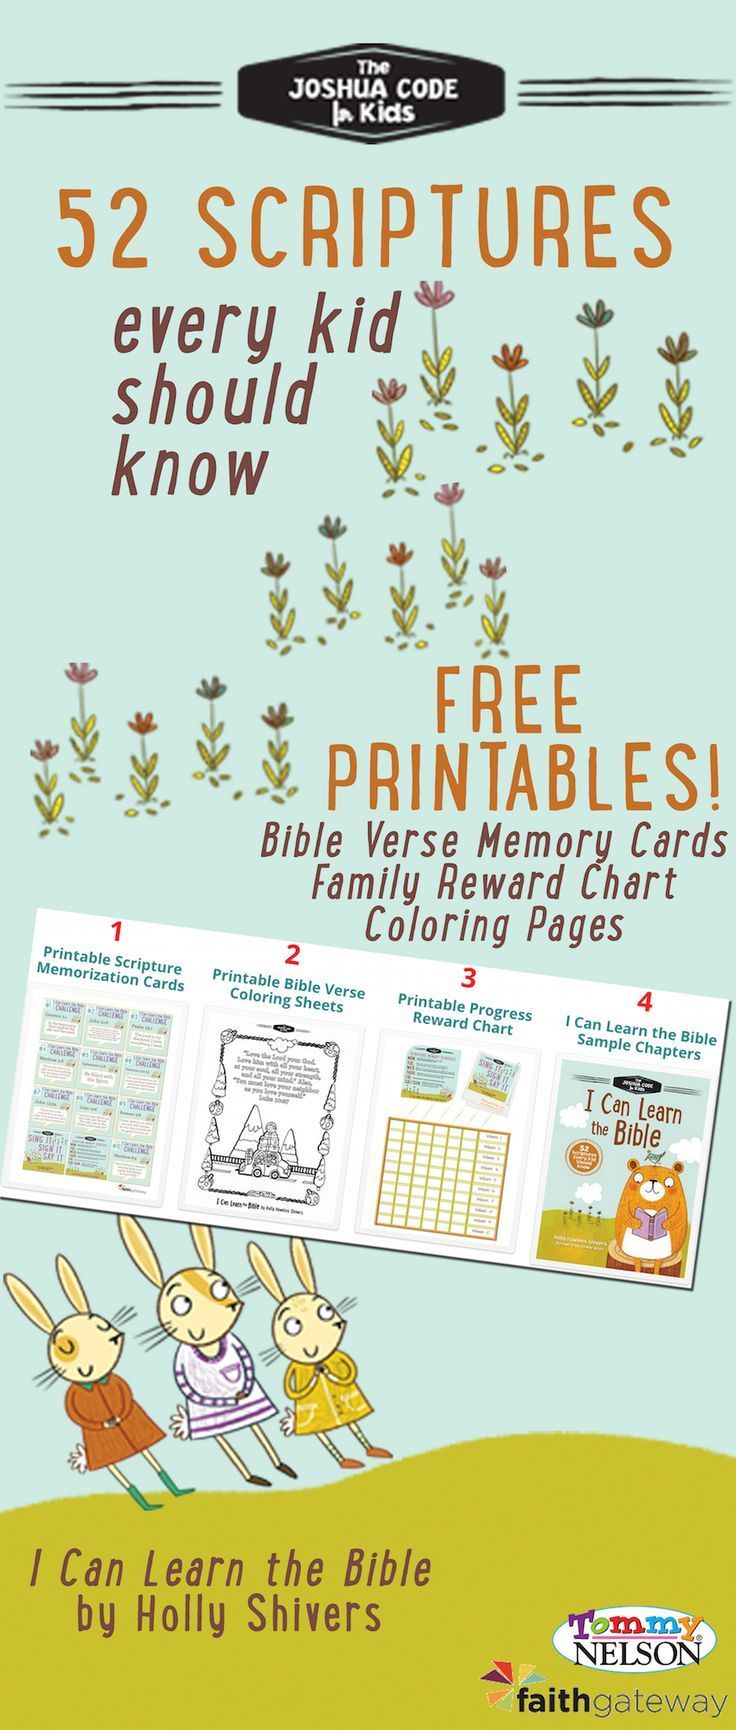 Heres a free resource for Christian parents who want to help their kids get excited about memorizing Scripture! Pass it along to all the parents, friends & Sunday School teachers you know!